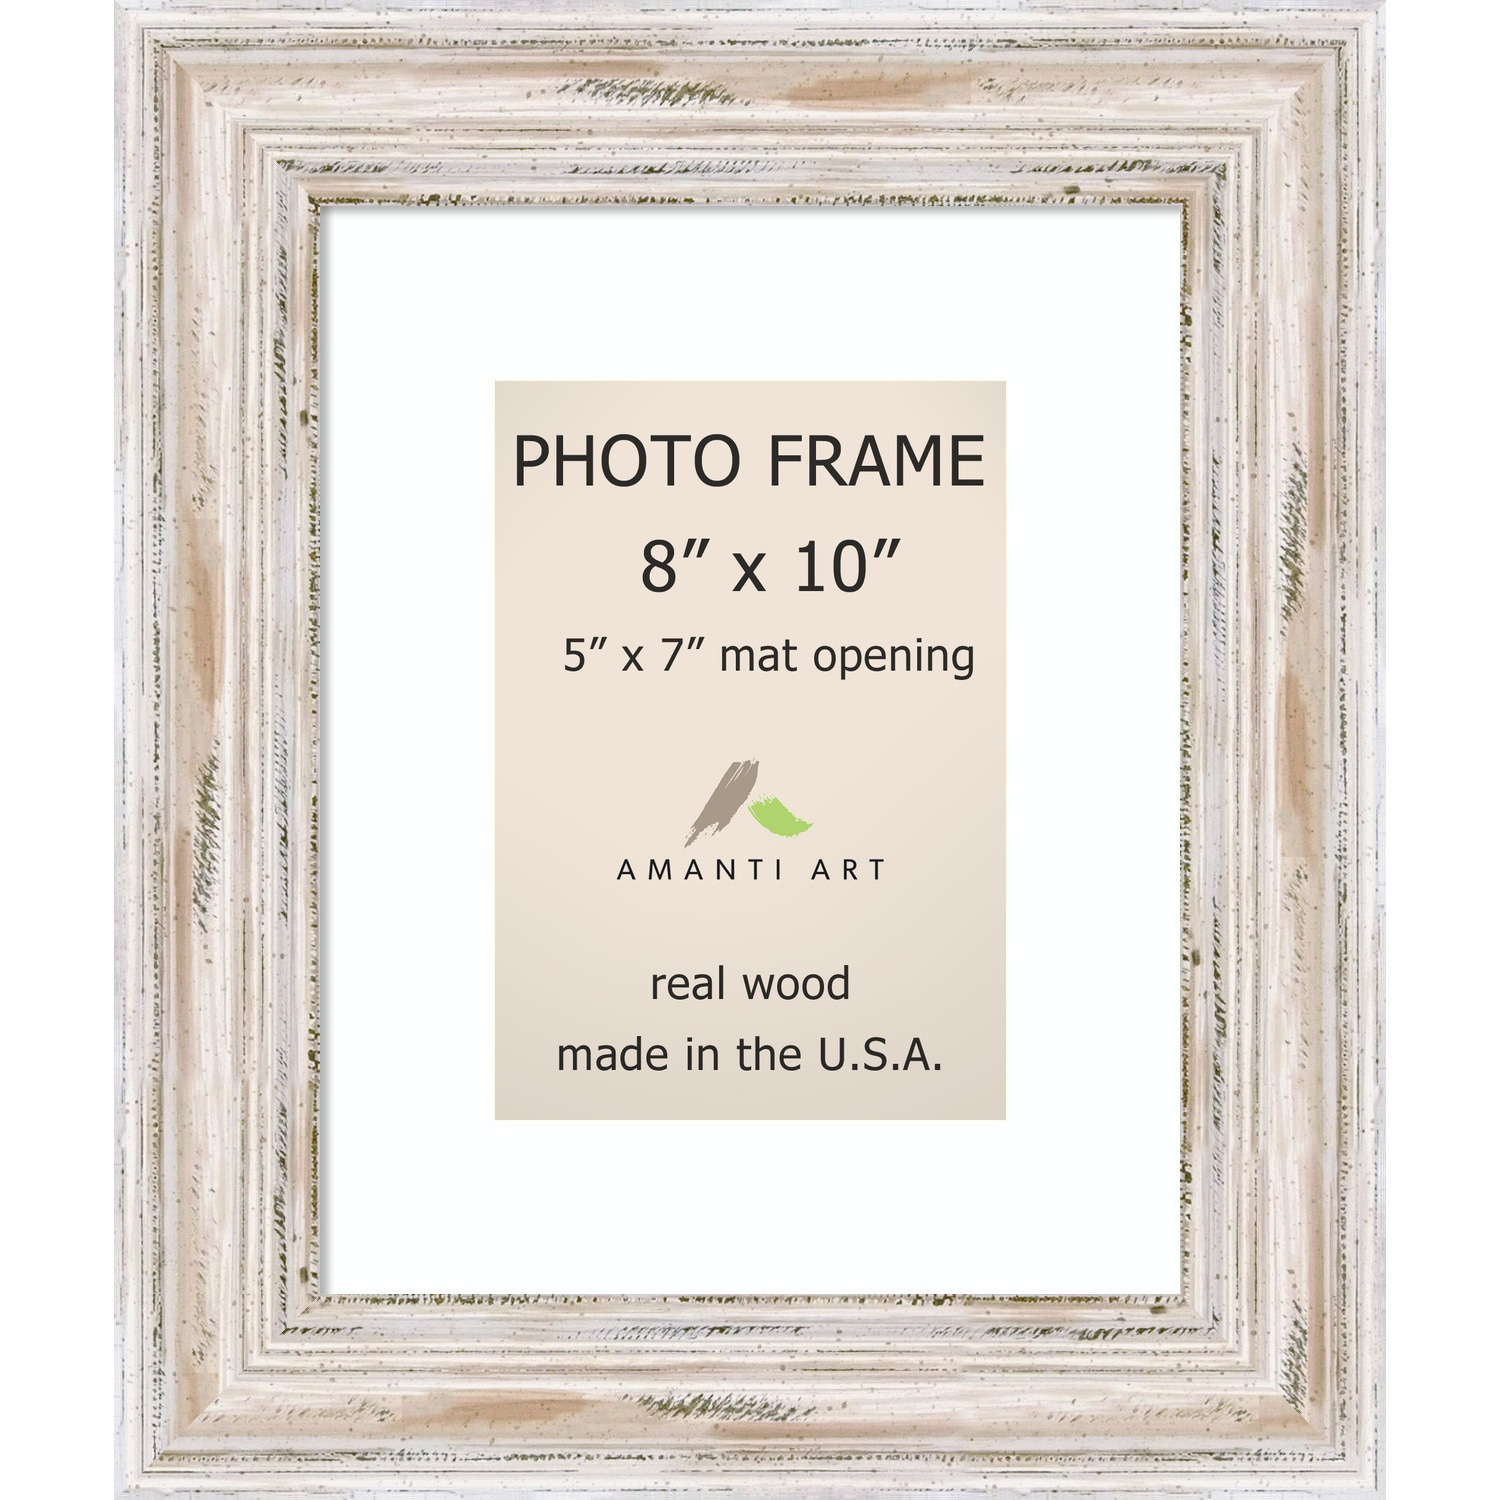 Alexandria whitewash photo frame 8x10 matted to 5x7 11 x 13 inch alexandria whitewash photo frame 8x10 matted to 5x7 11 x 13 inch free shipping today overstock 17221657 jeuxipadfo Gallery